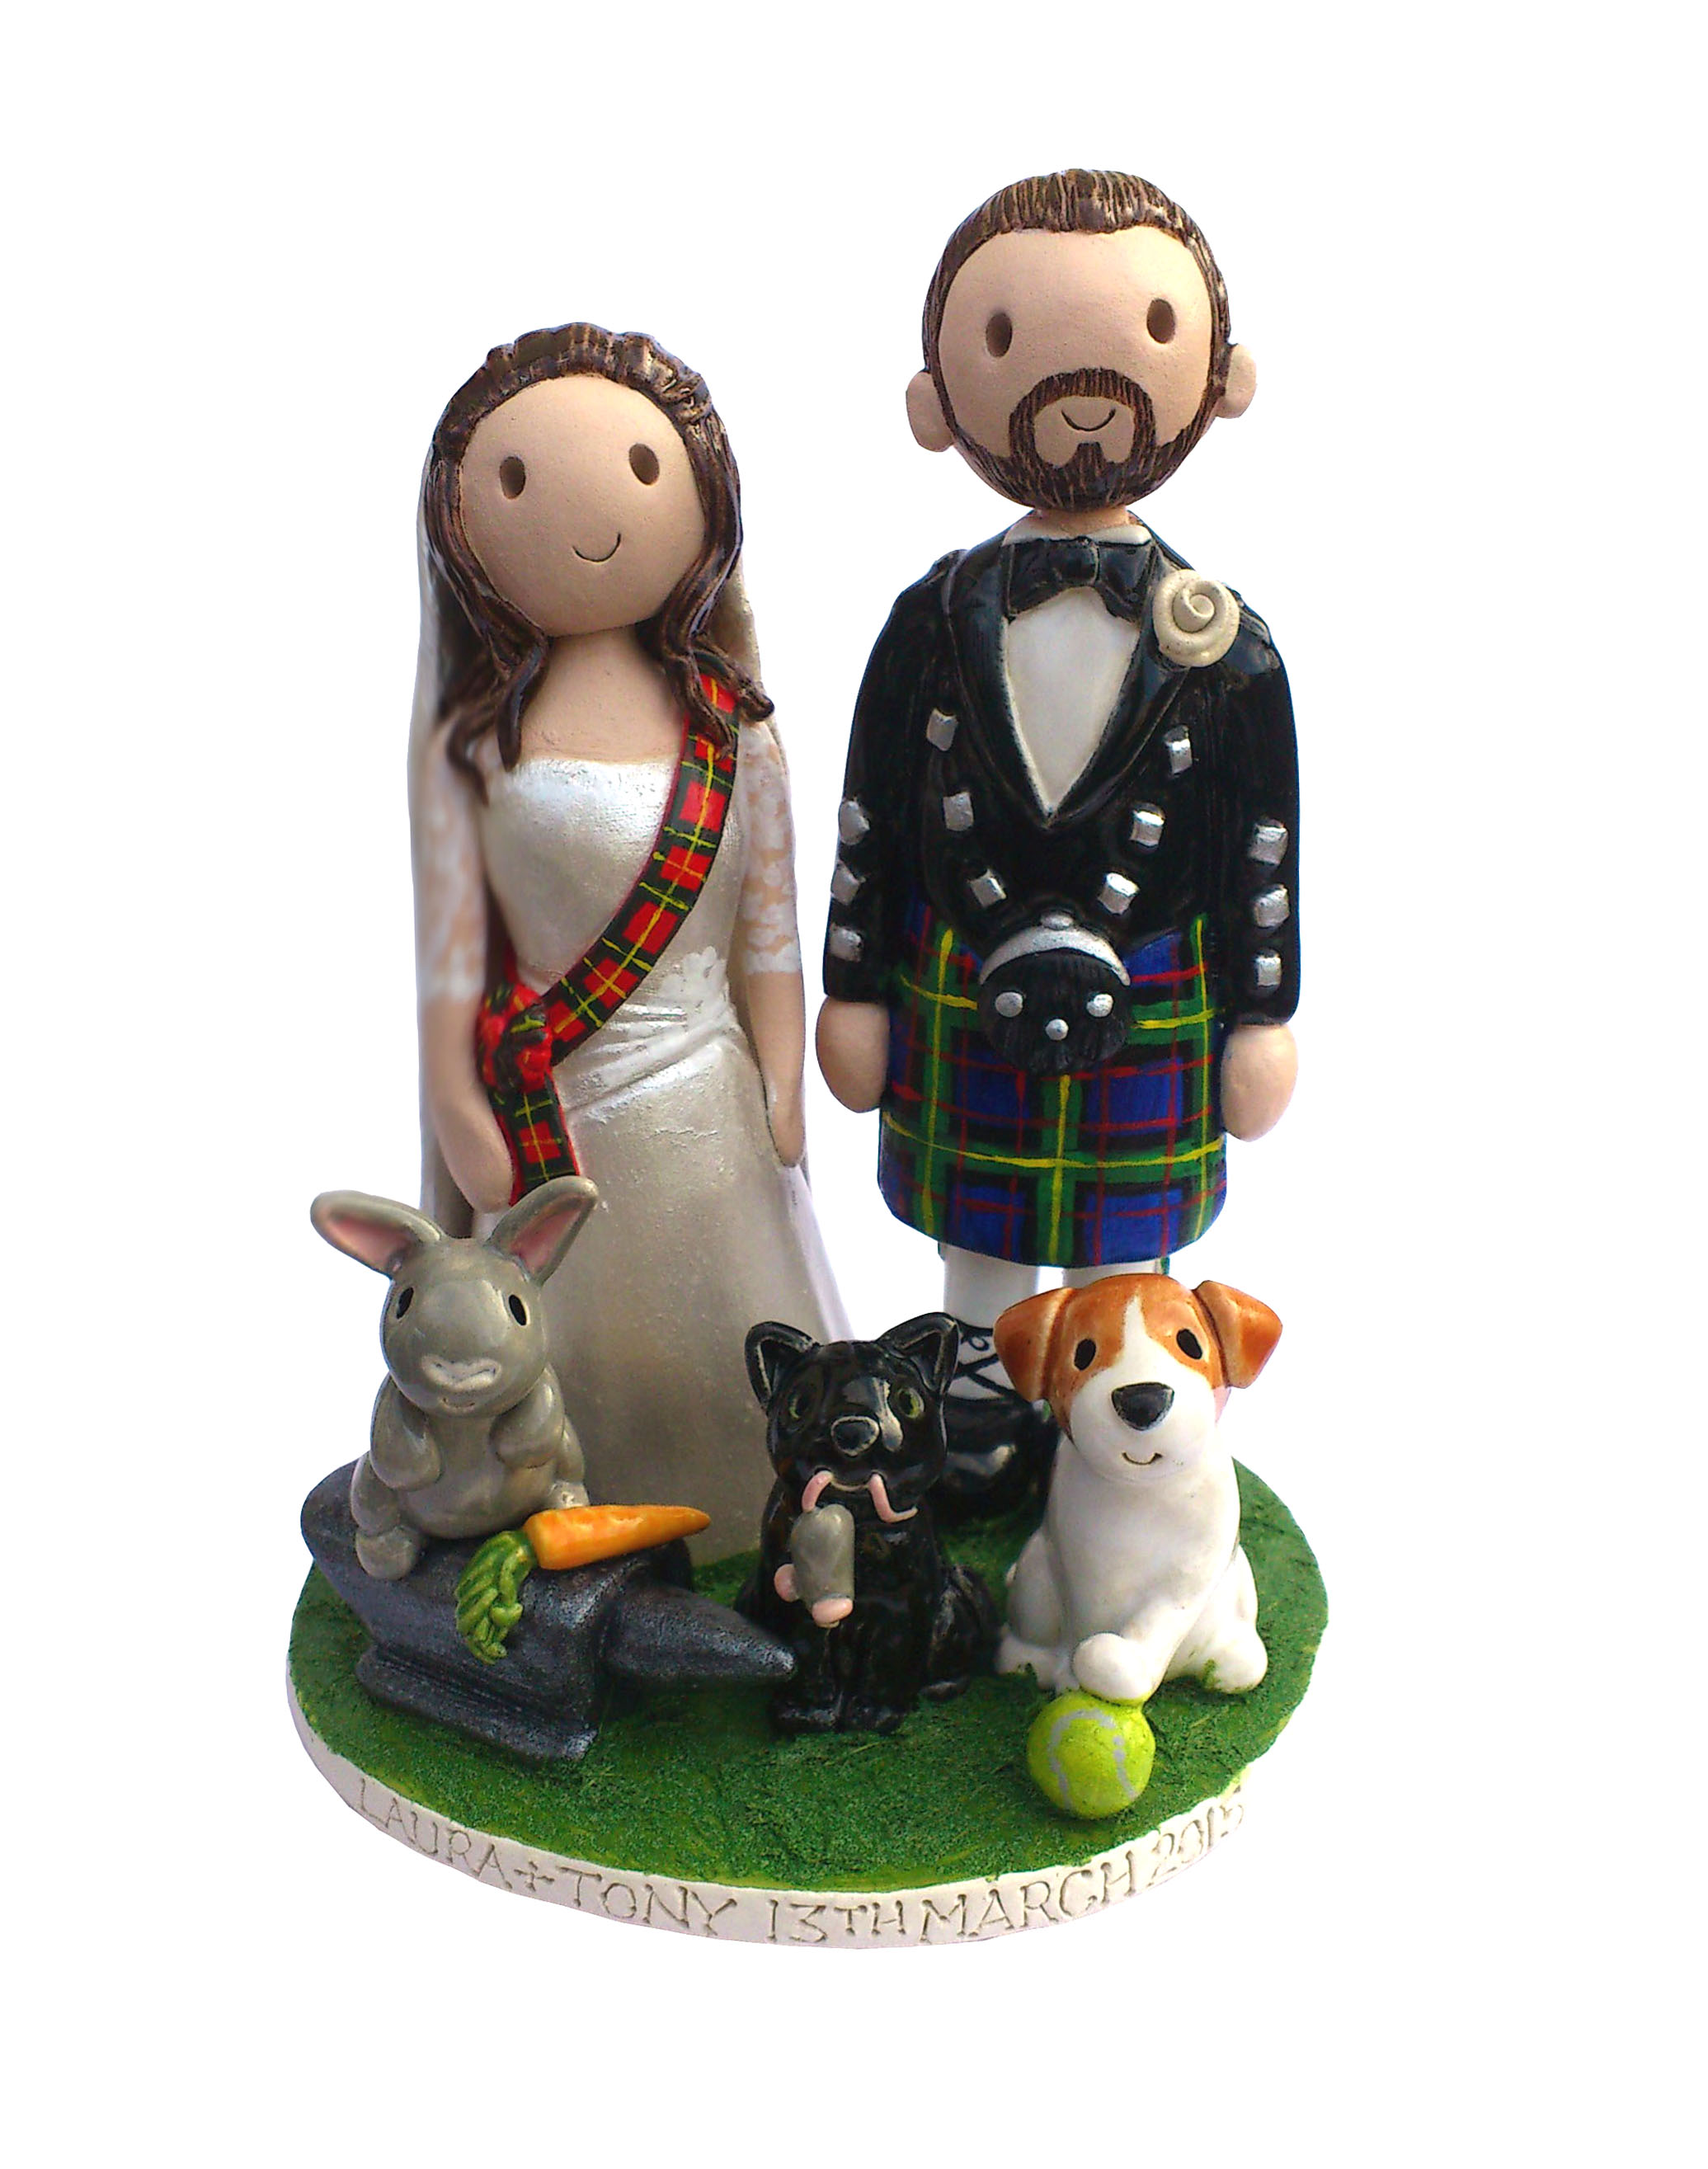 personalised wedding cake toppers uk only wedding cake toppers made personalised wedding cake 18257